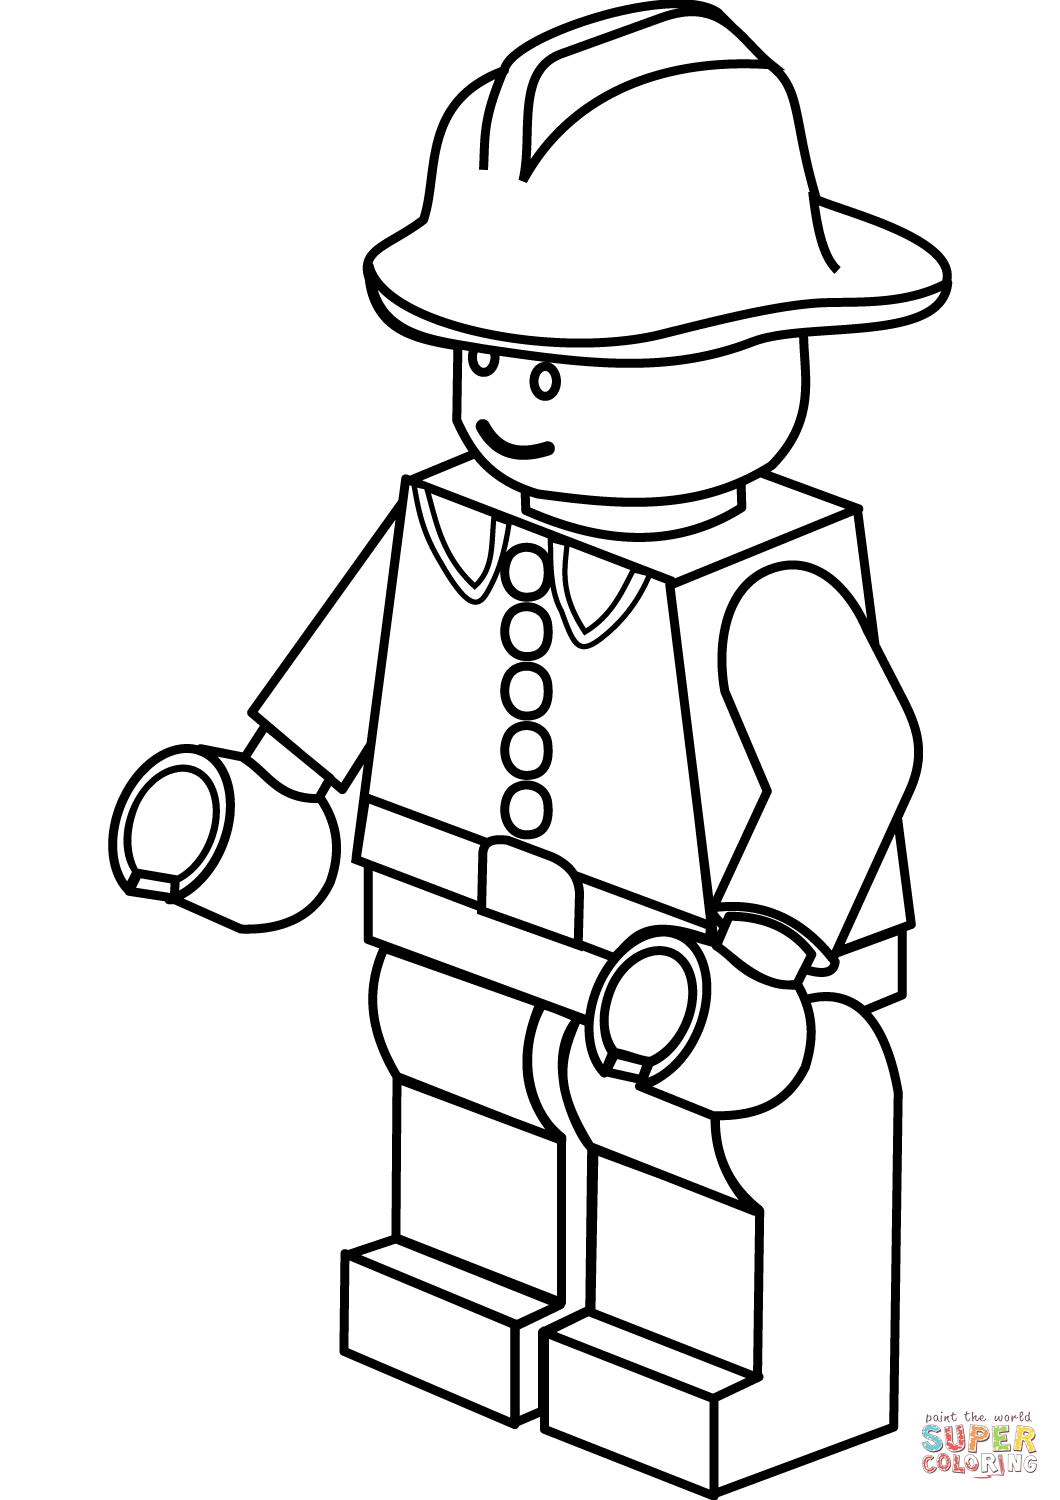 1060x1500 Lego Firefighter Coloring Page Free Printable Coloring Pages